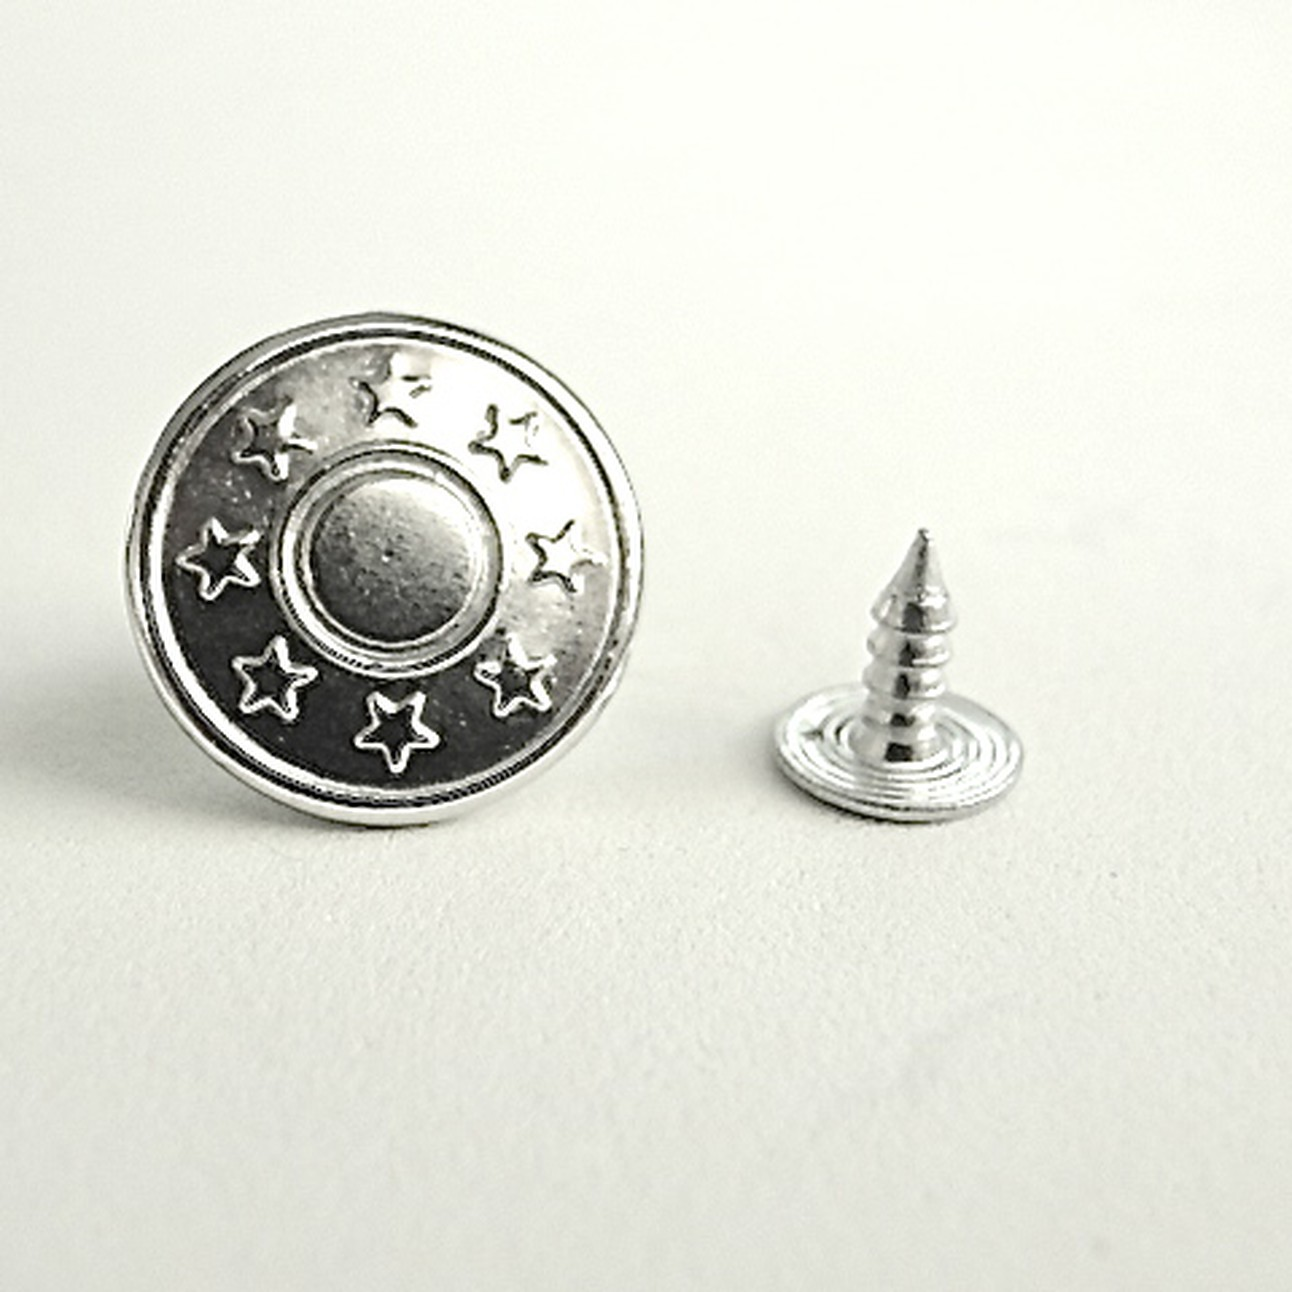 Nickel Replacement Jean Buttons